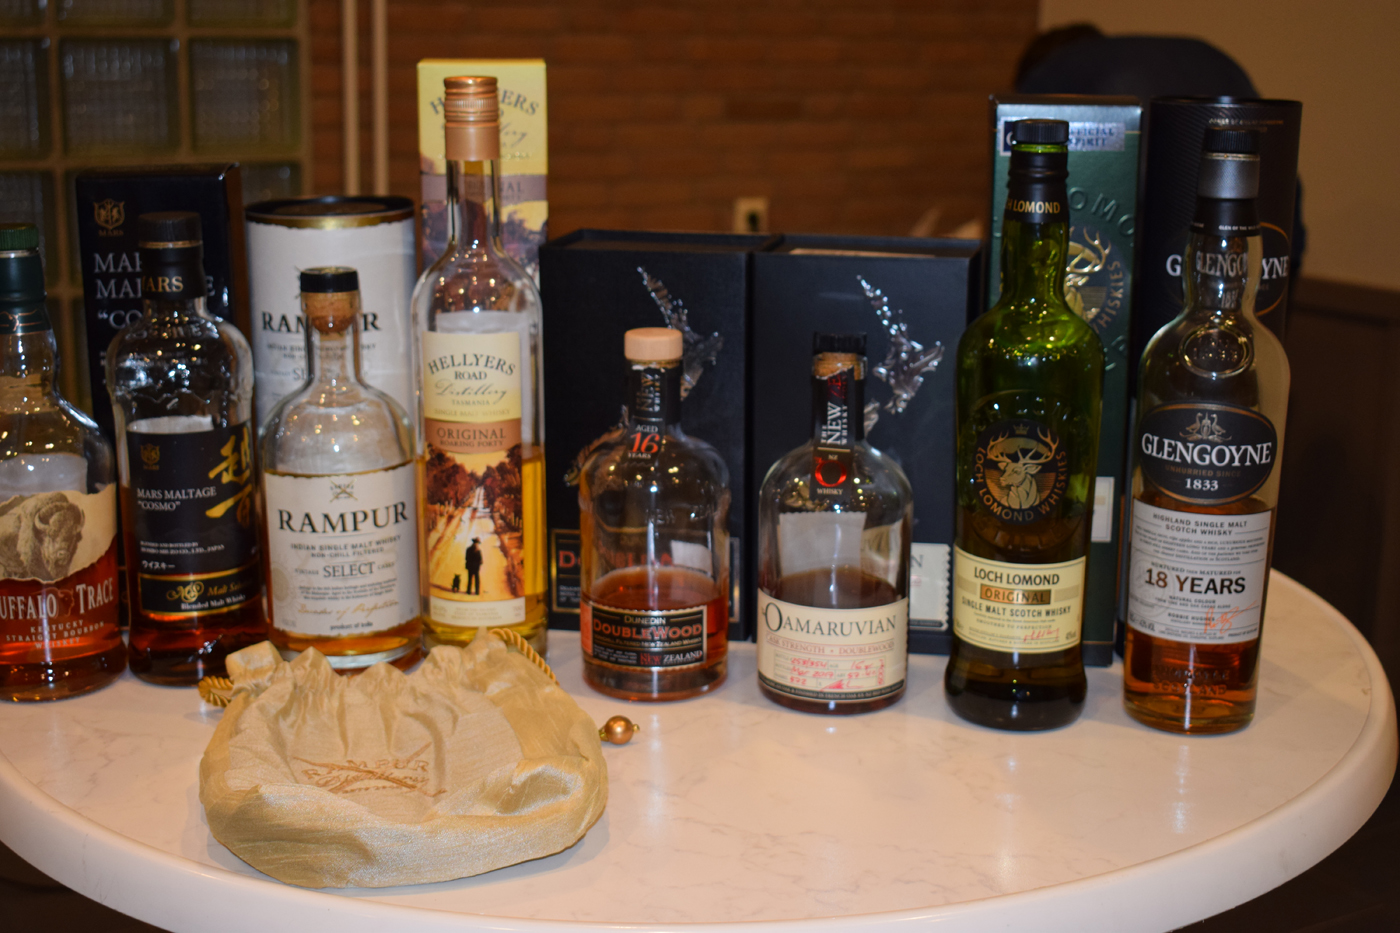 Rampur Indian Single Malt favoriet op Wereld Whisky Tasting in Den Hoorn